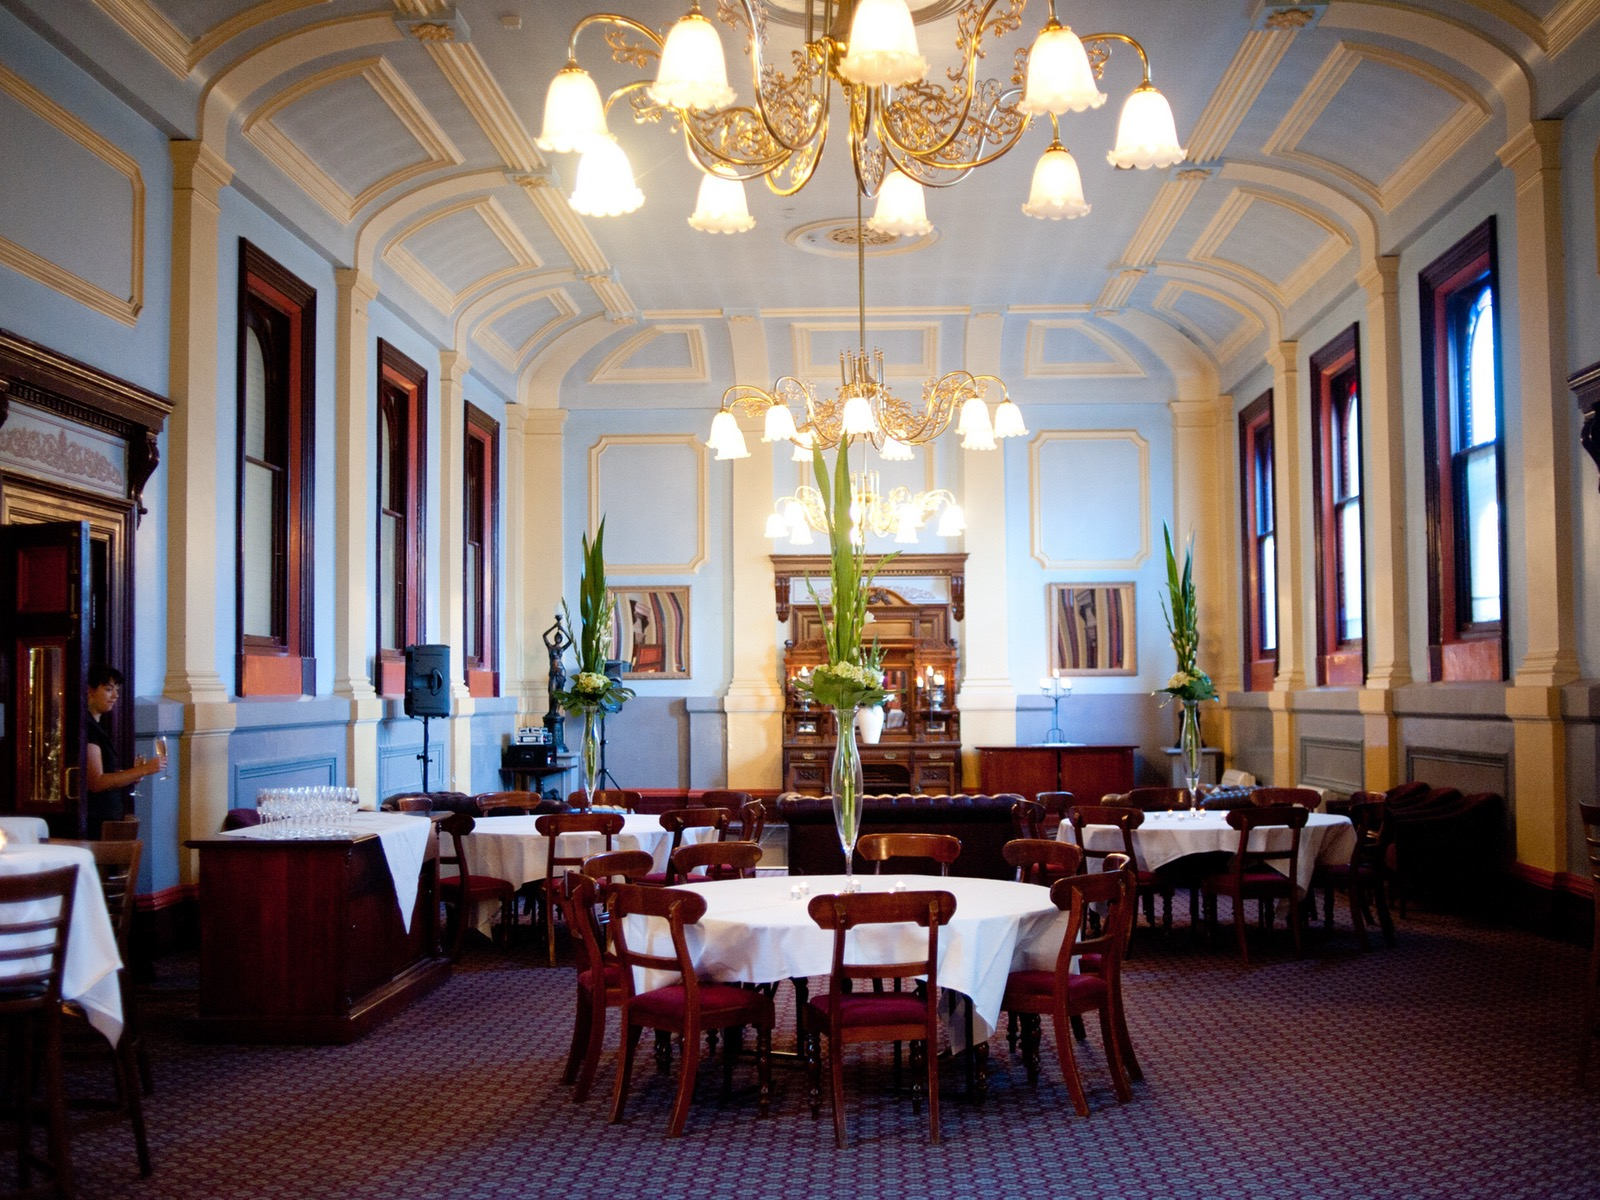 the magestic Grand Dining Room